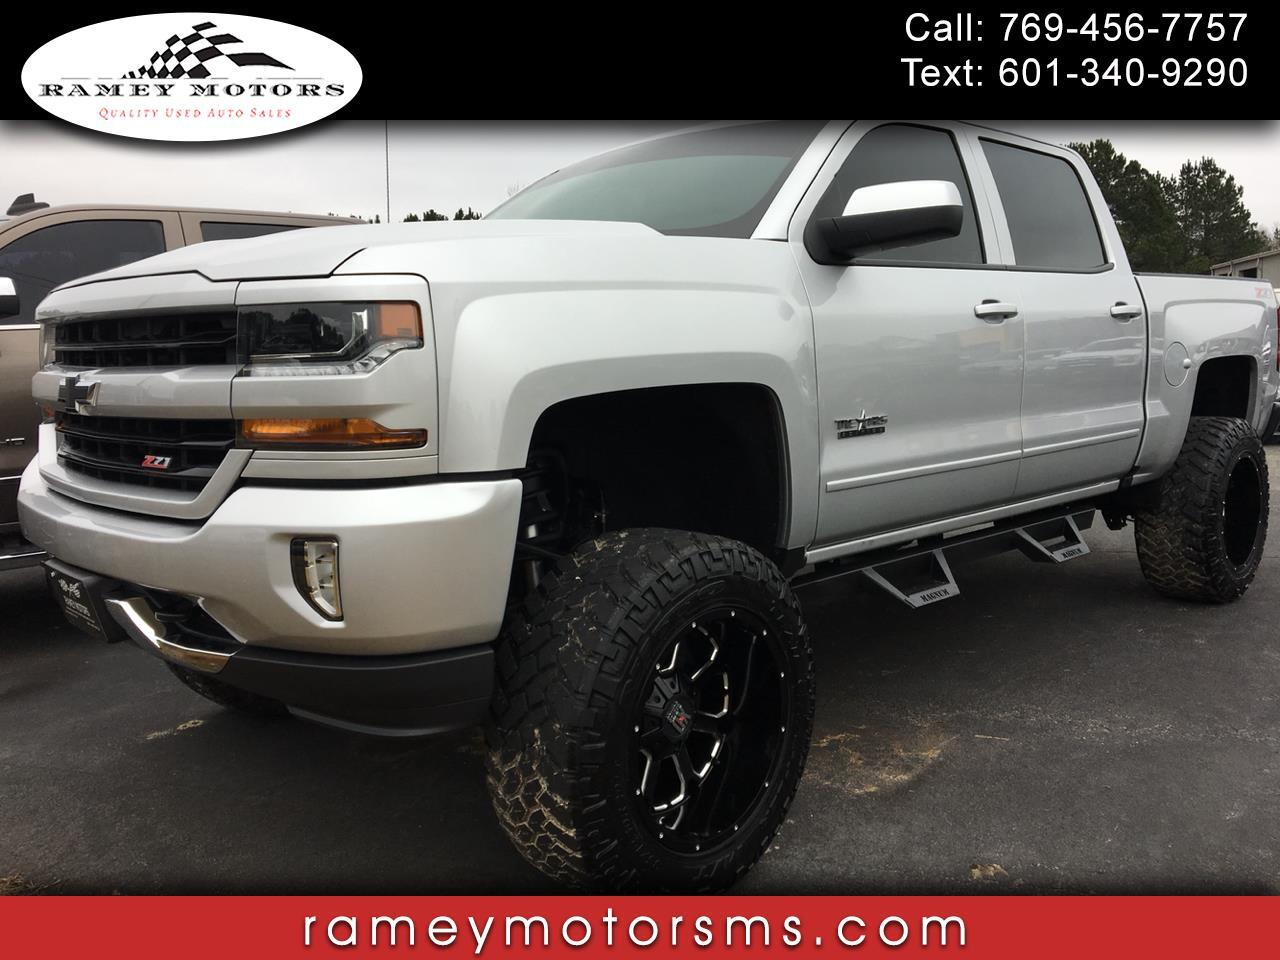 2017 Chevrolet Silverado 1500 4WD CREWCAB 2LT CUSTOM LIFTED